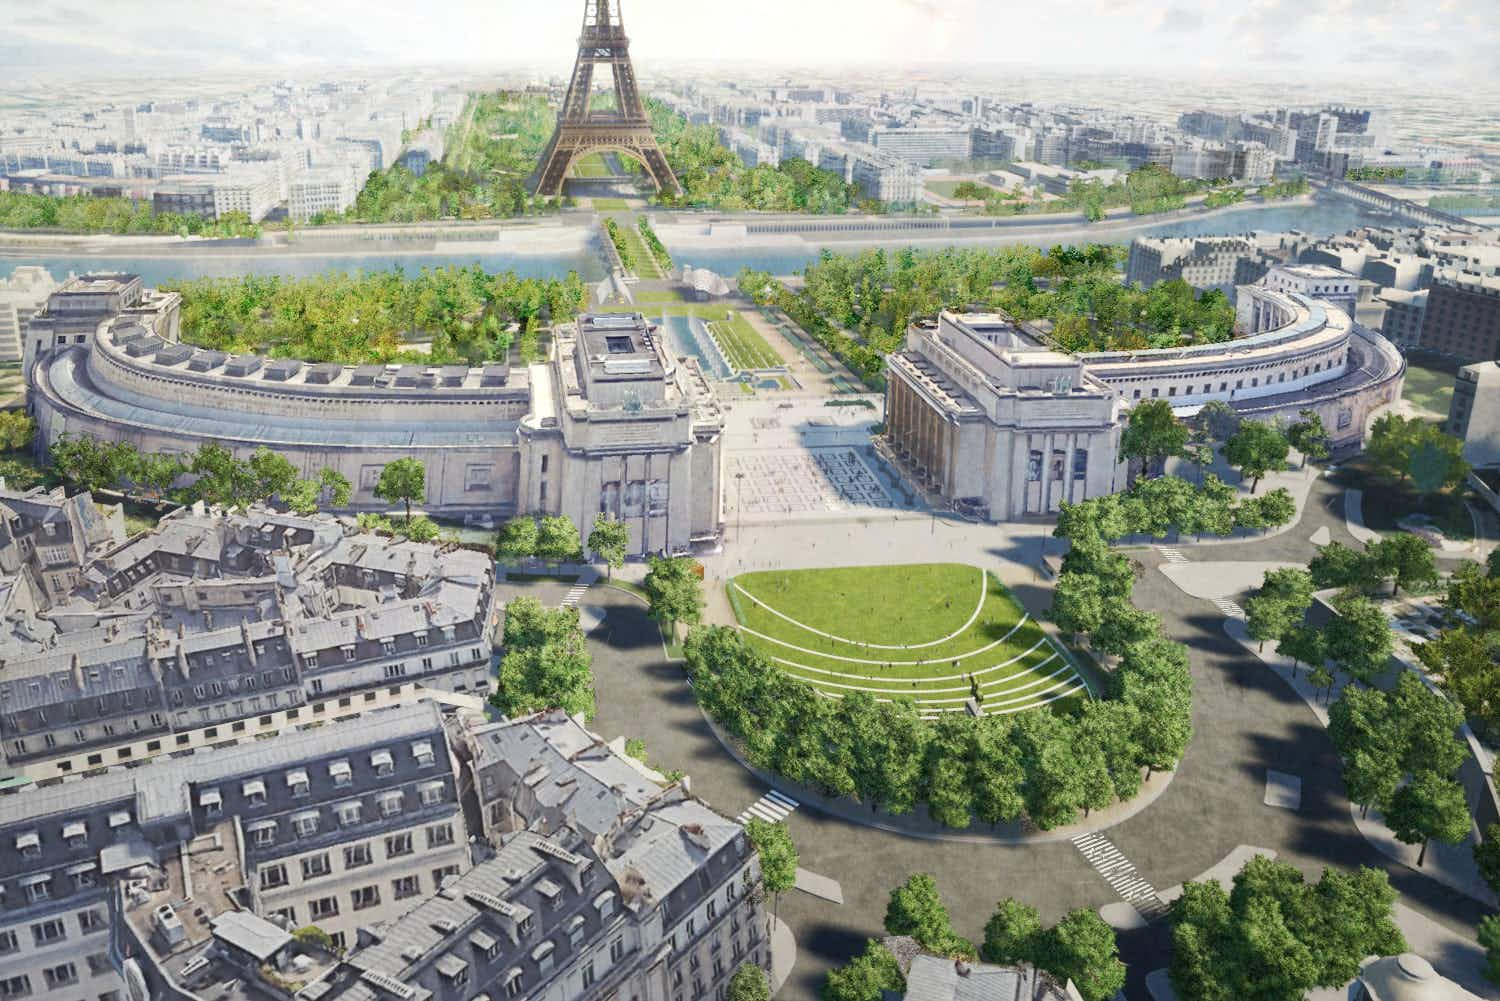 Paris plans a huge pedestrianised garden around the Eiffel Tower